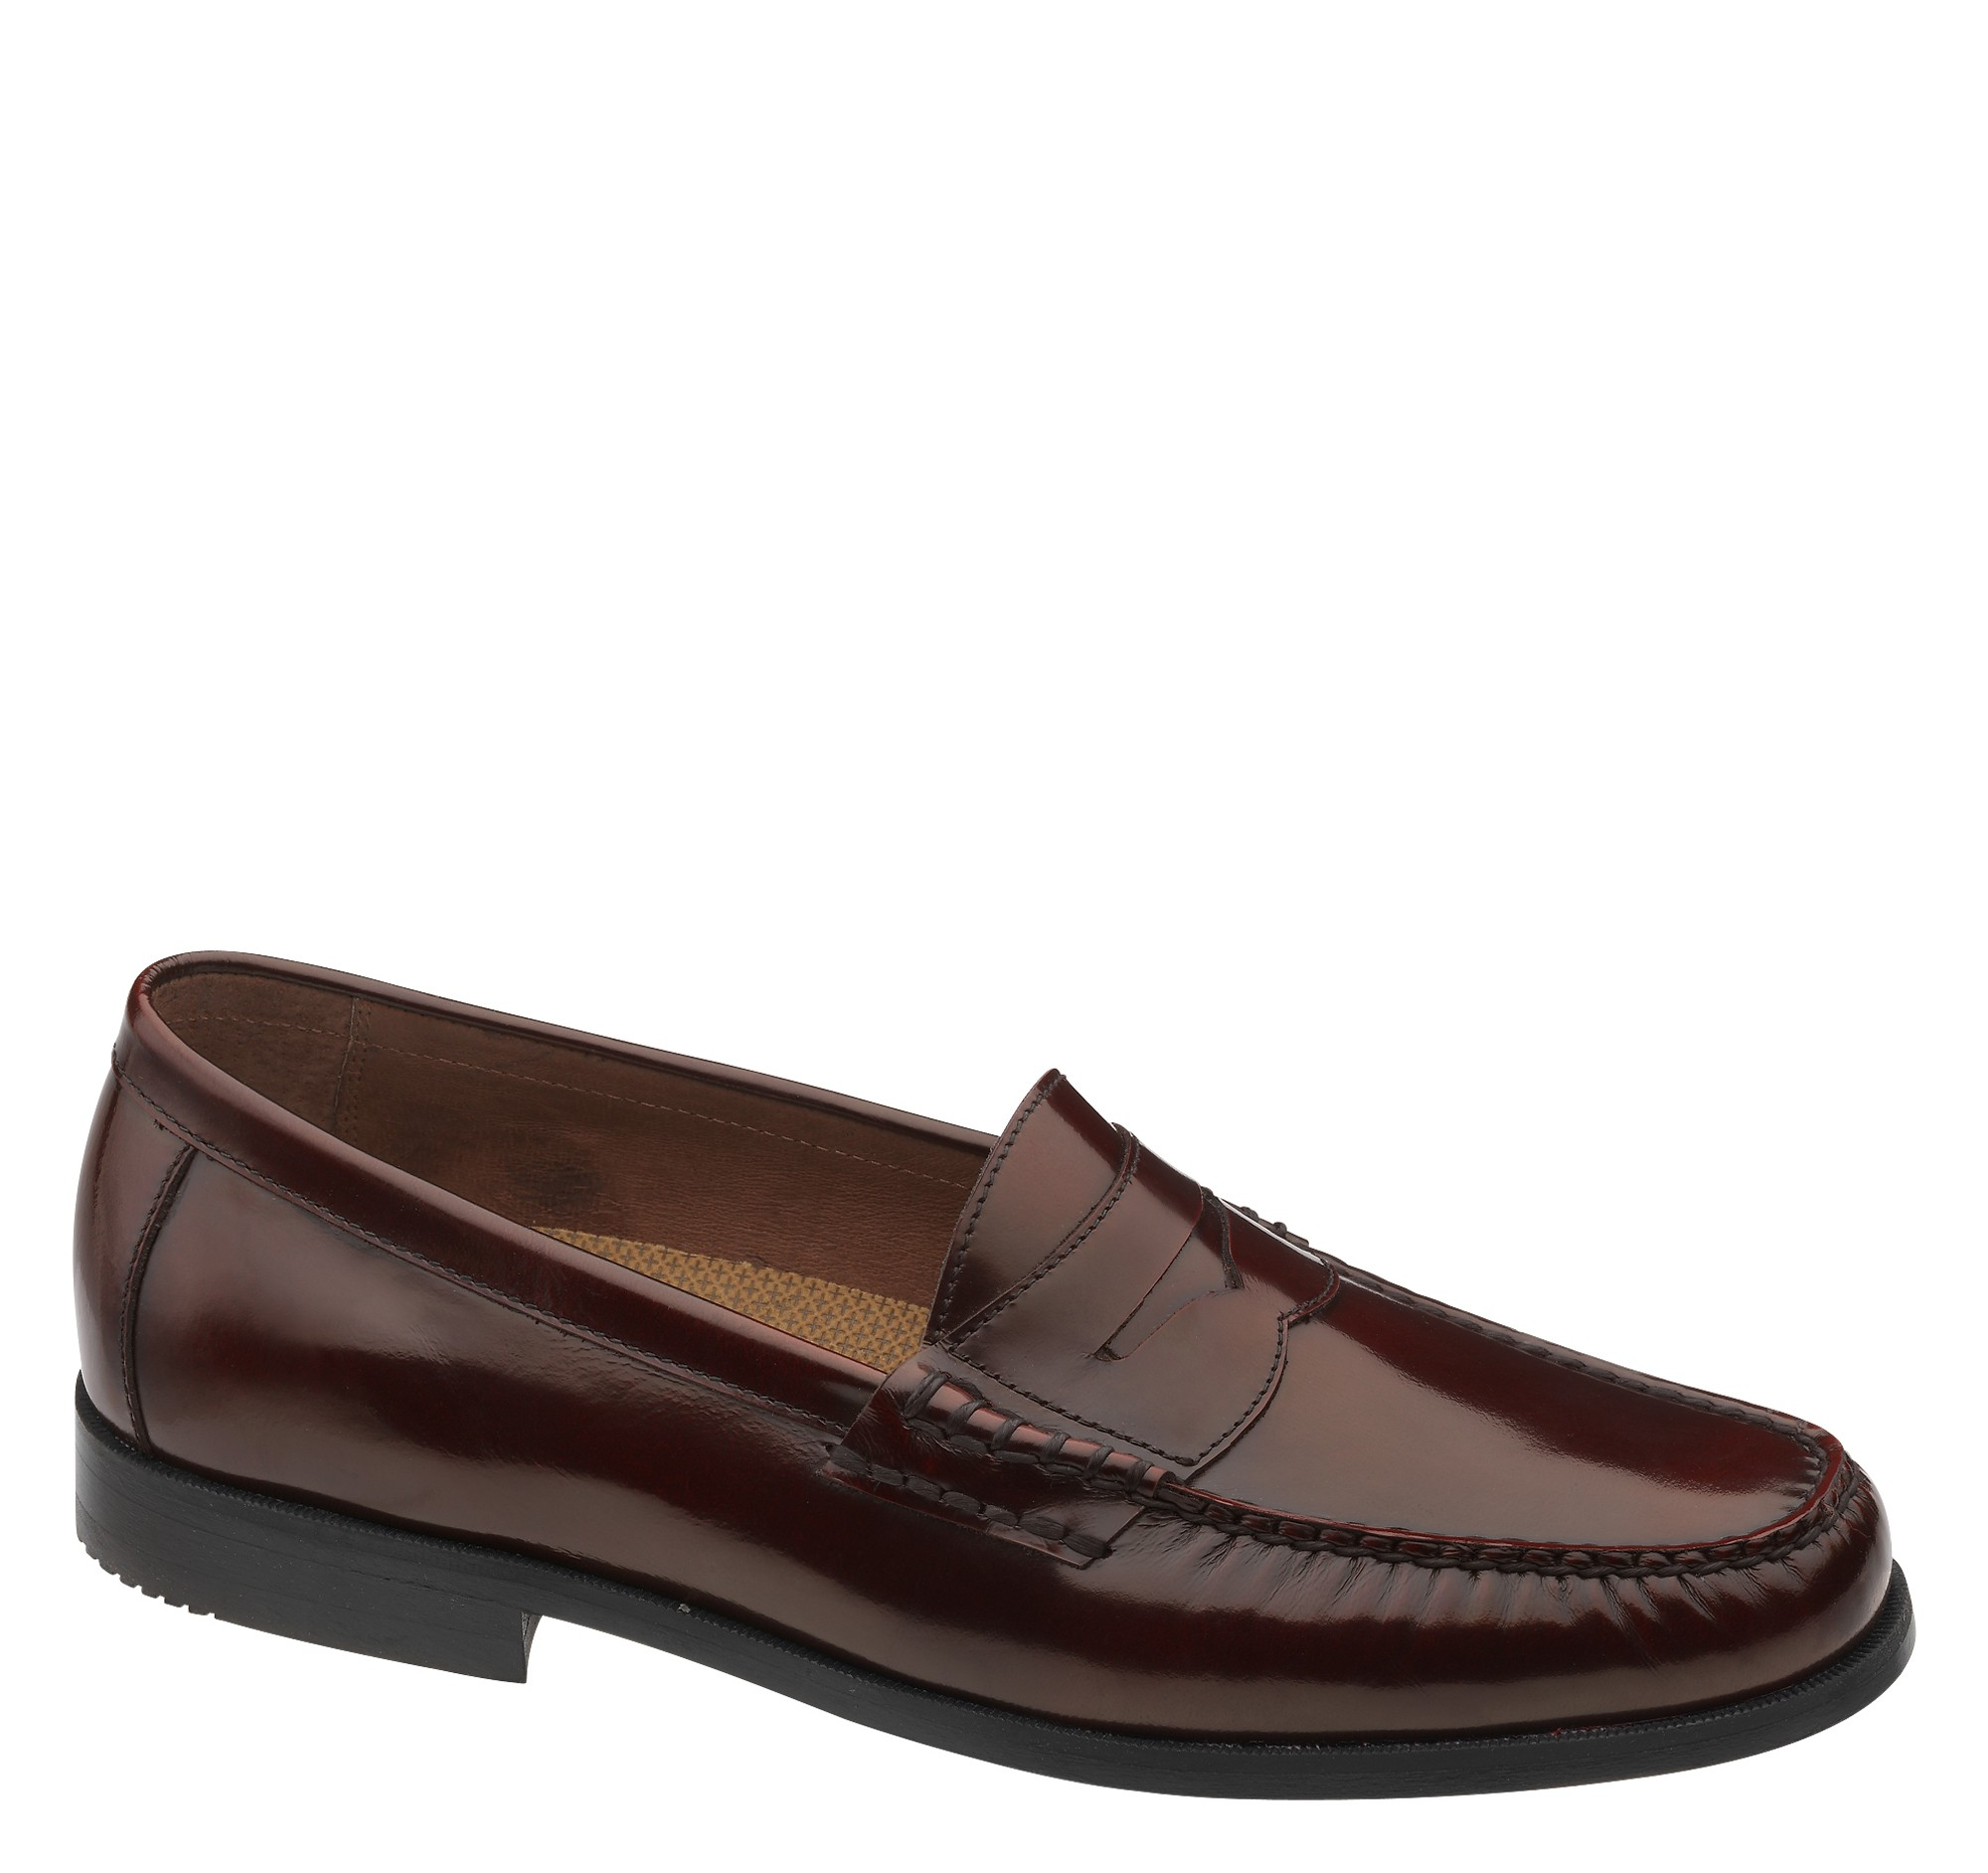 Johnston & Murphy Men's Pannell Penny Loafer 7JbKV